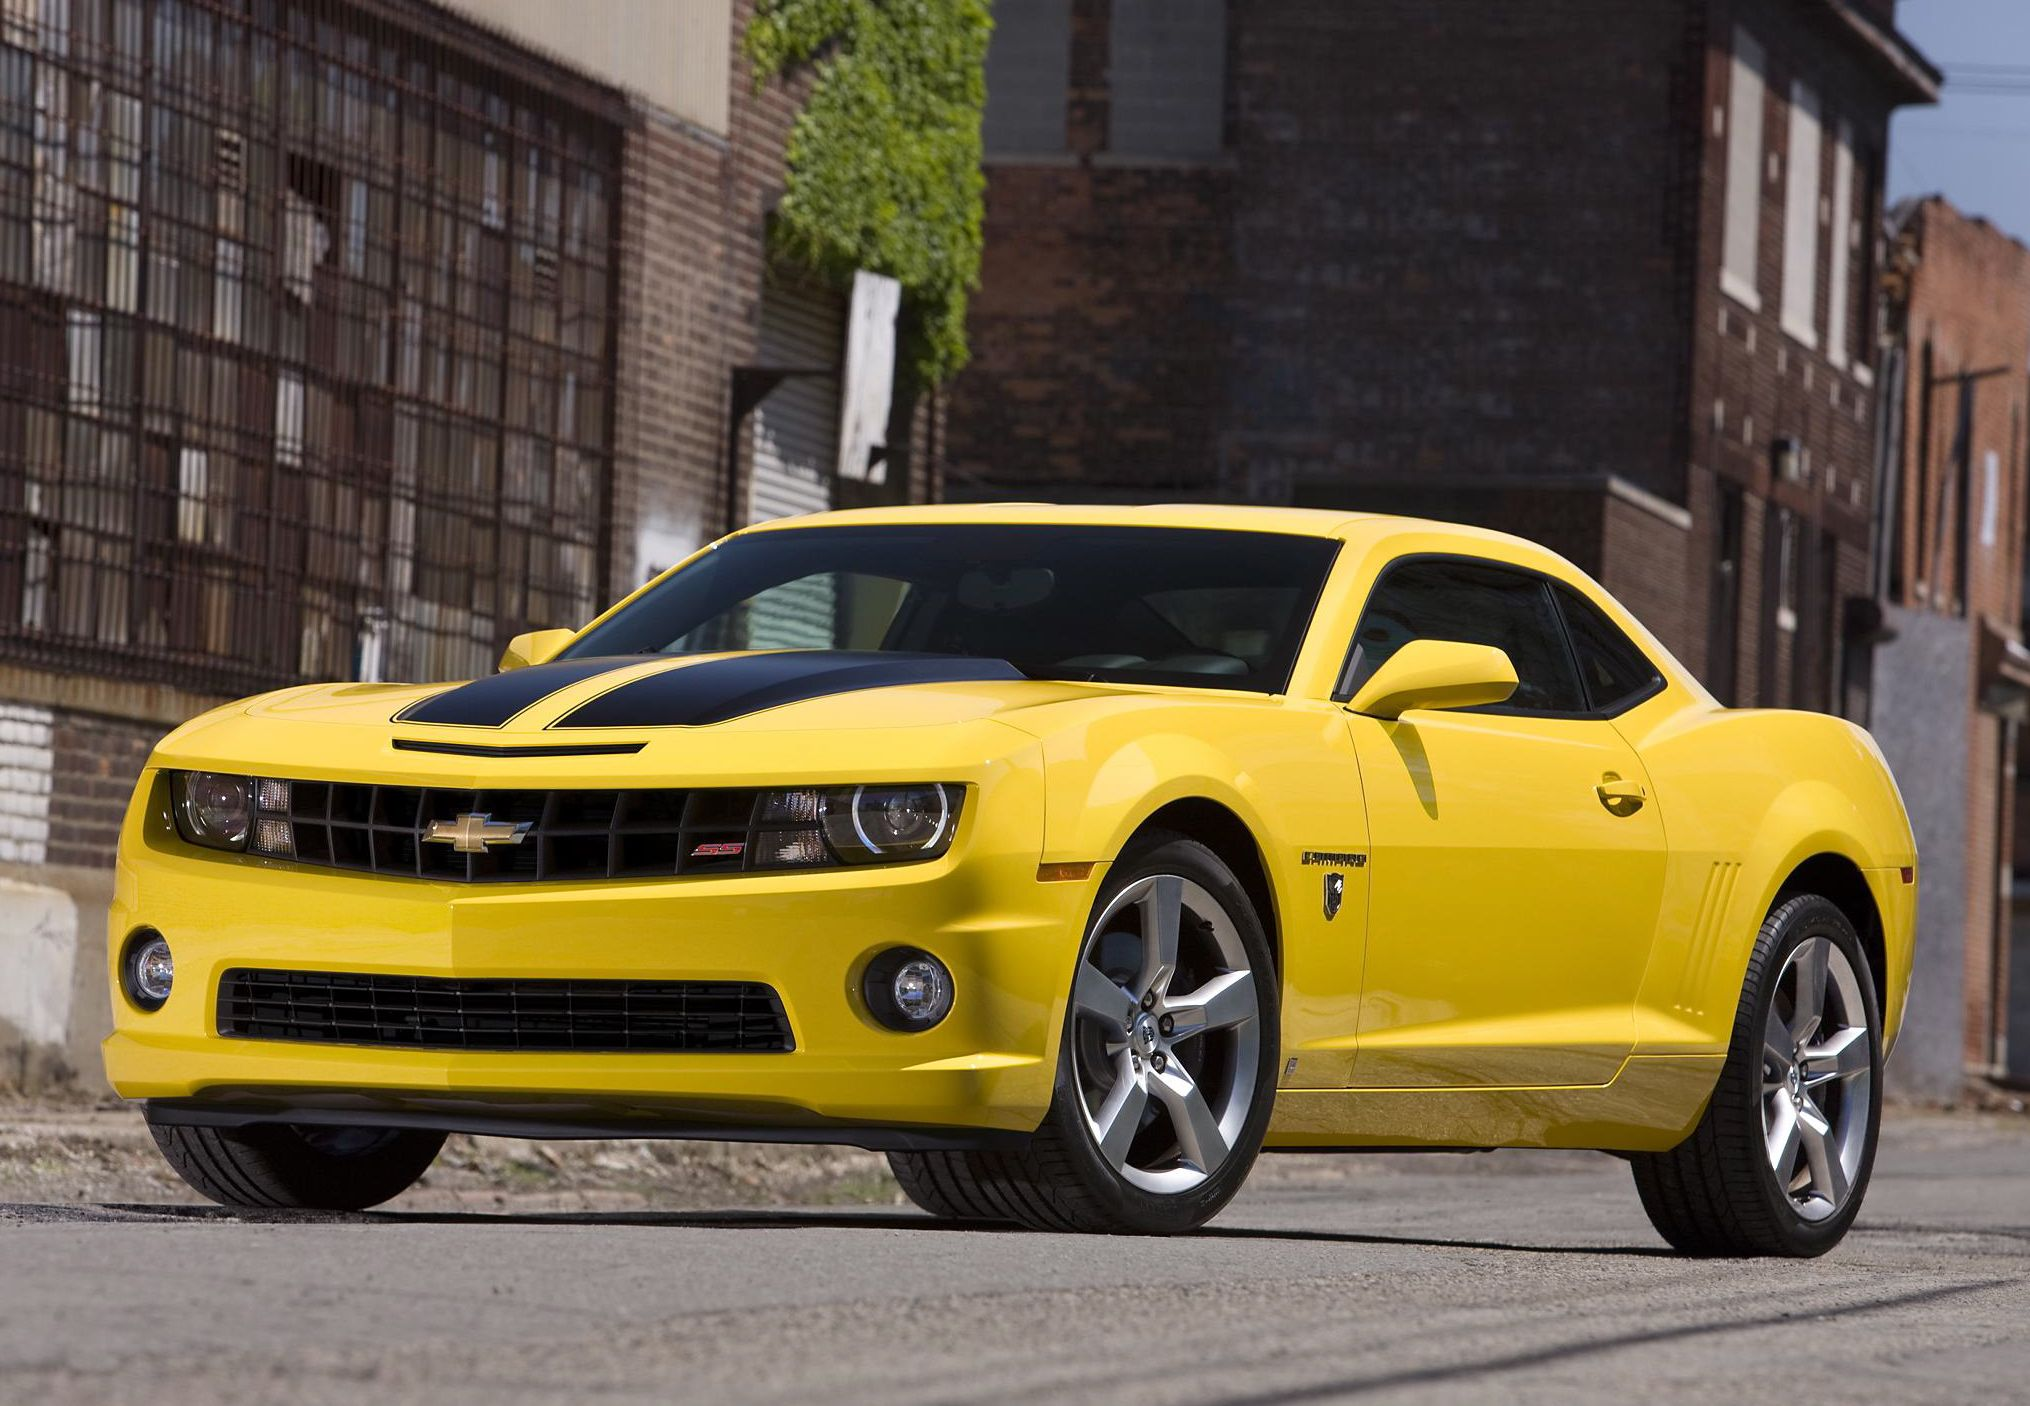 Chevrolet Camaro coming to the UK in 2011 - AOL UK Cars